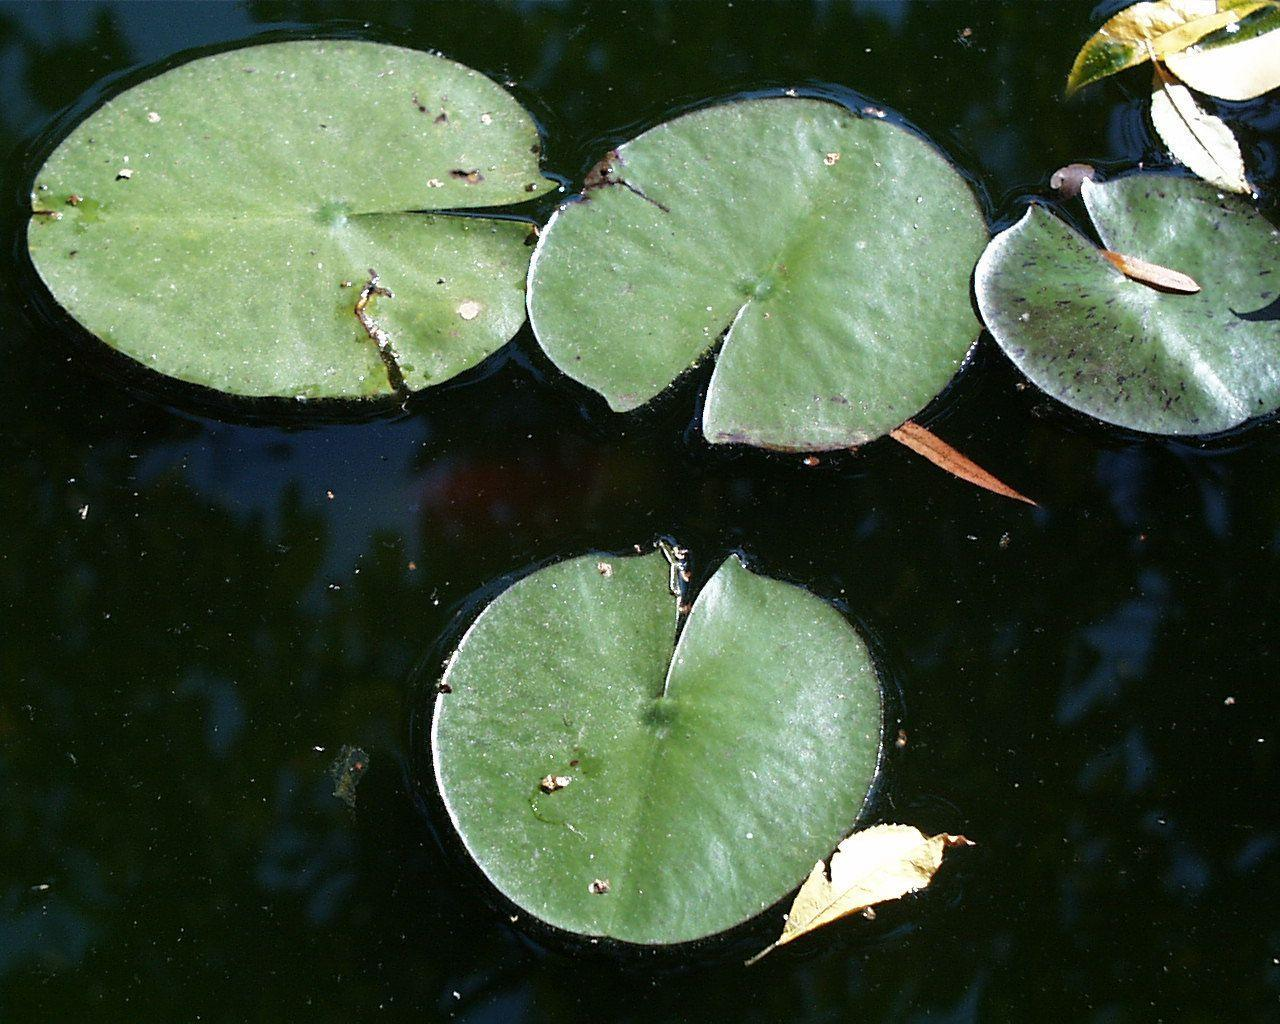 download lily pad wallpaper gallery